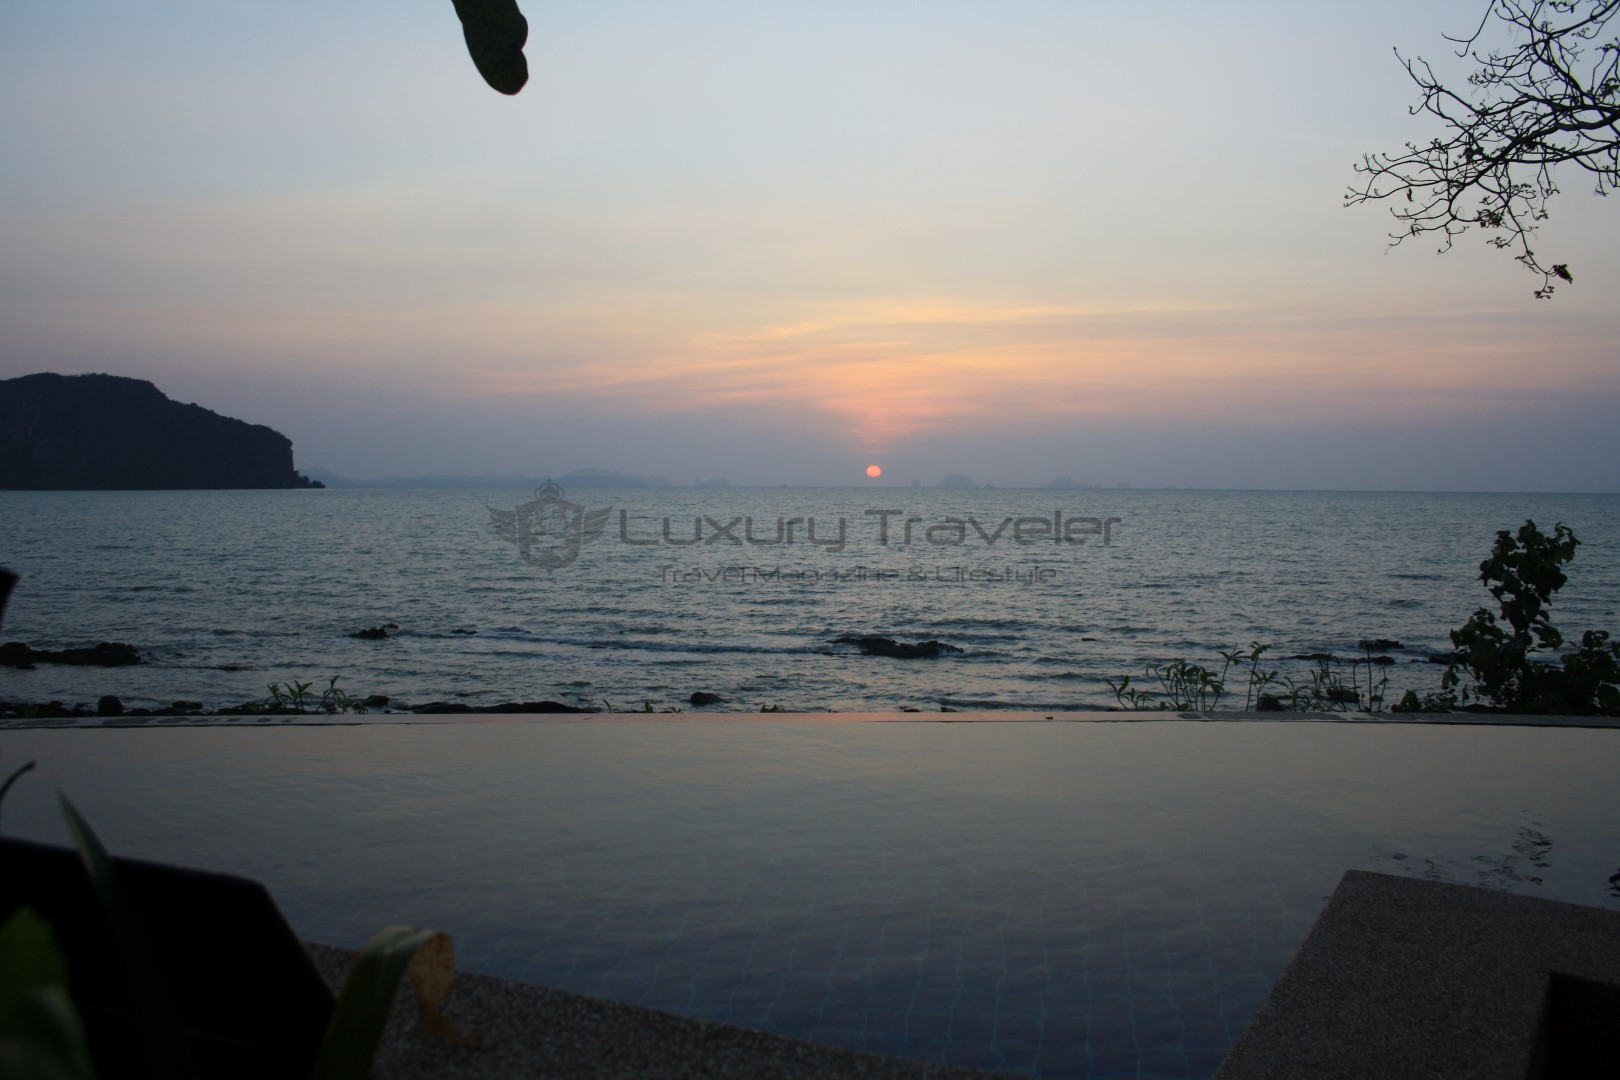 Koh Yao Yai Village by Treasury Group - Luxury Thailand - Luxury Traveler